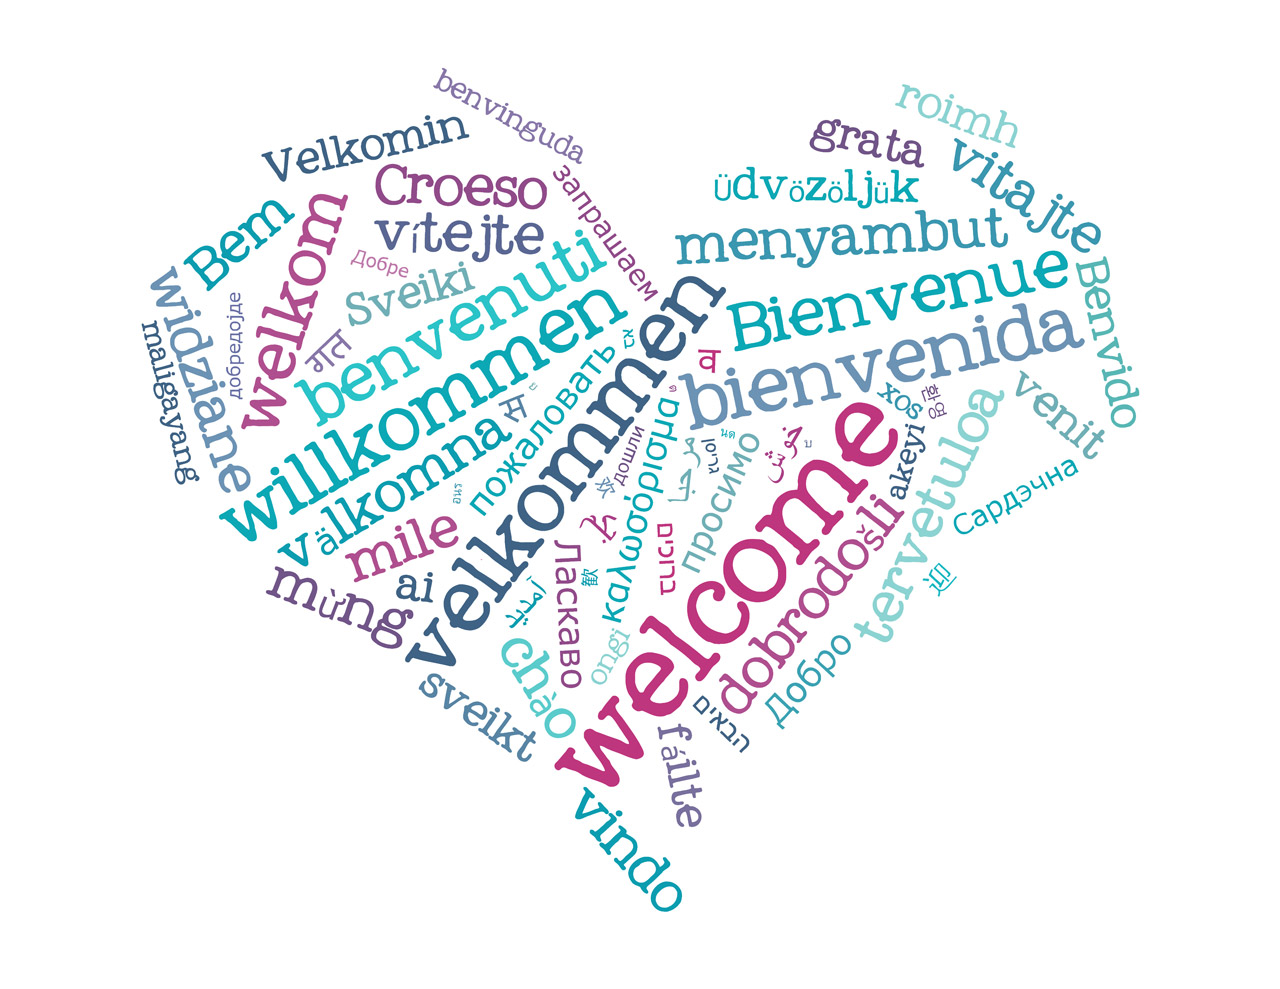 Welcome in many languages heart shaped word cloud